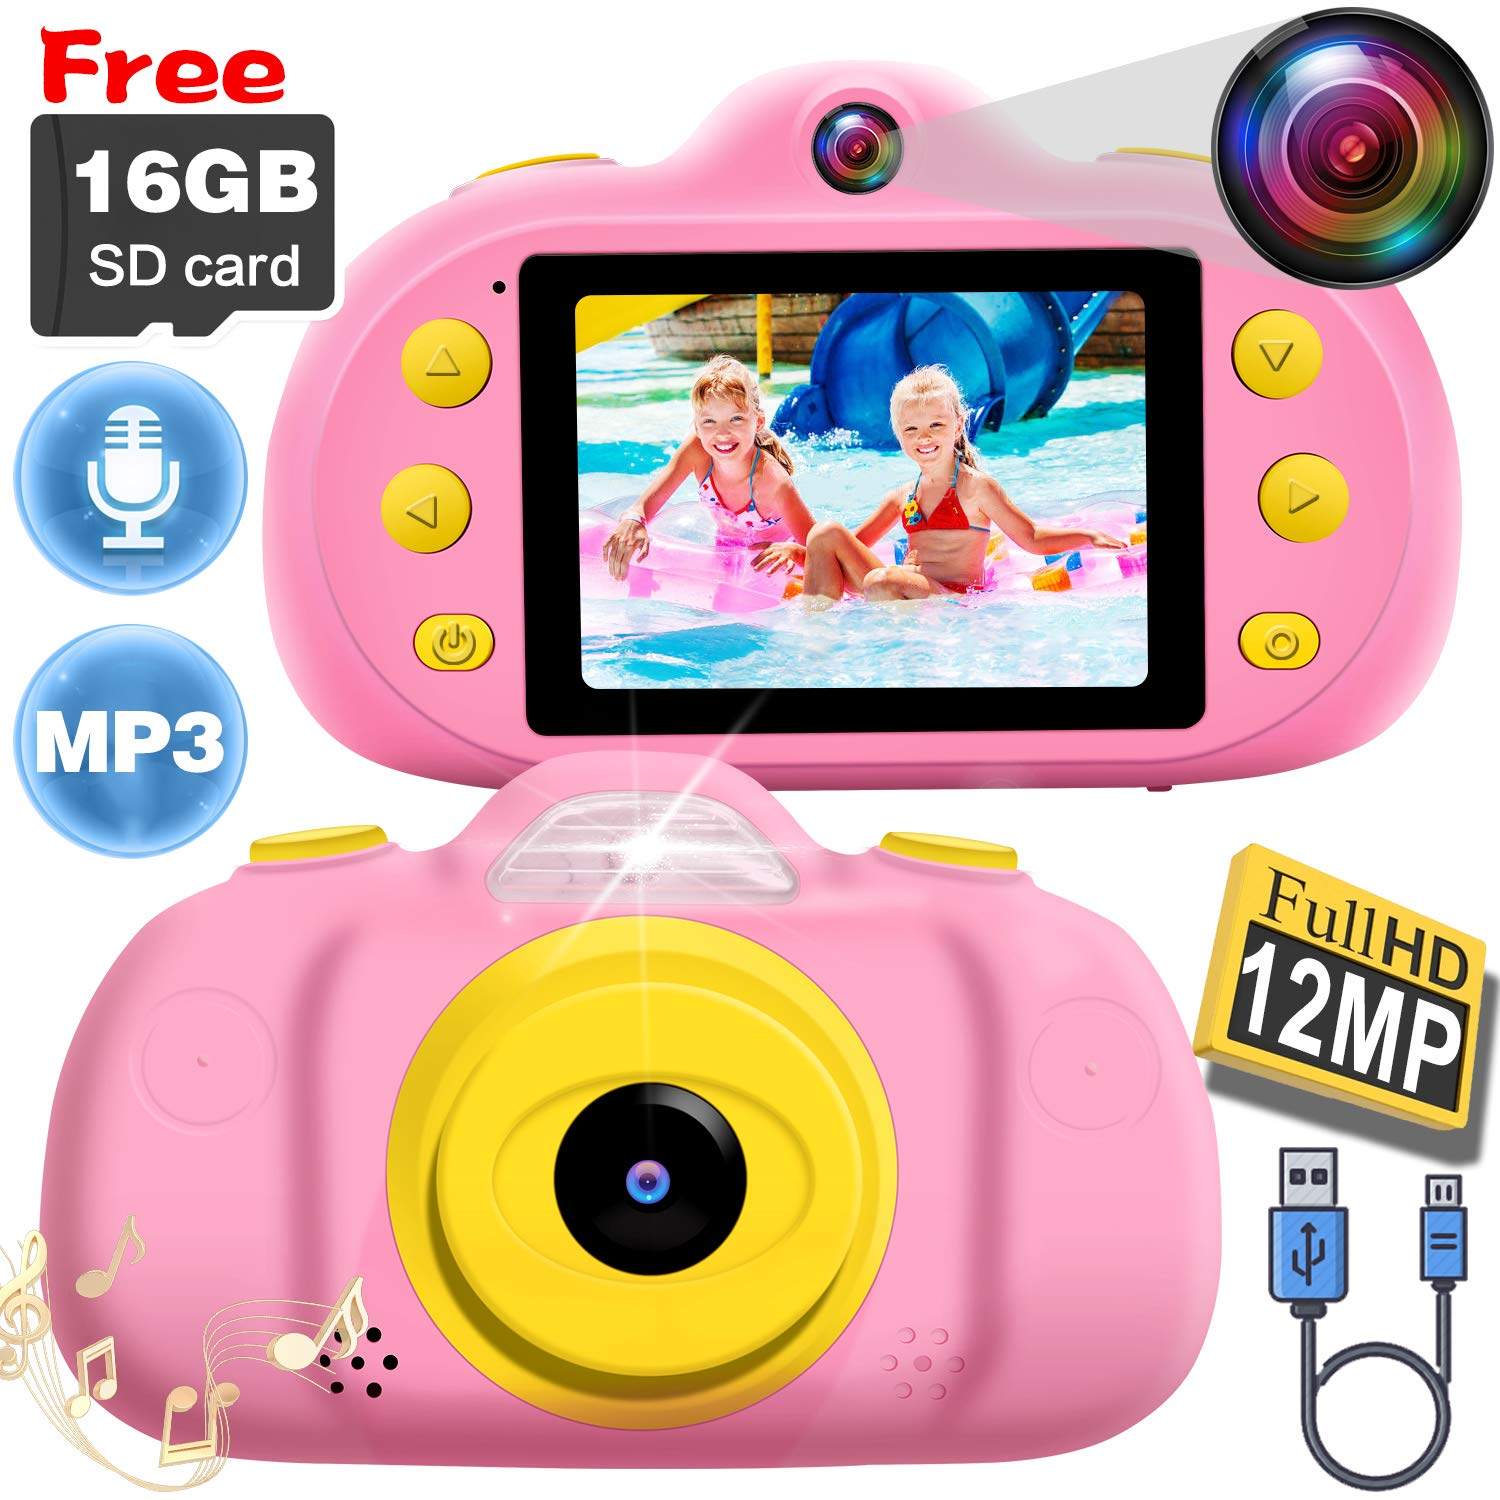 [NEW]2.4'' Kids Camera 12MP Kid Gift Toy DUAL Lens Camera 3-10 Years Girl boy HD 1080P Selfie Camera Mini Child Digital Camcorder with Puzzle Game,MP3 Kid Outdoor Camera Birthday Gift[Free 16G SD Card] by Camlinbo (Image #1)